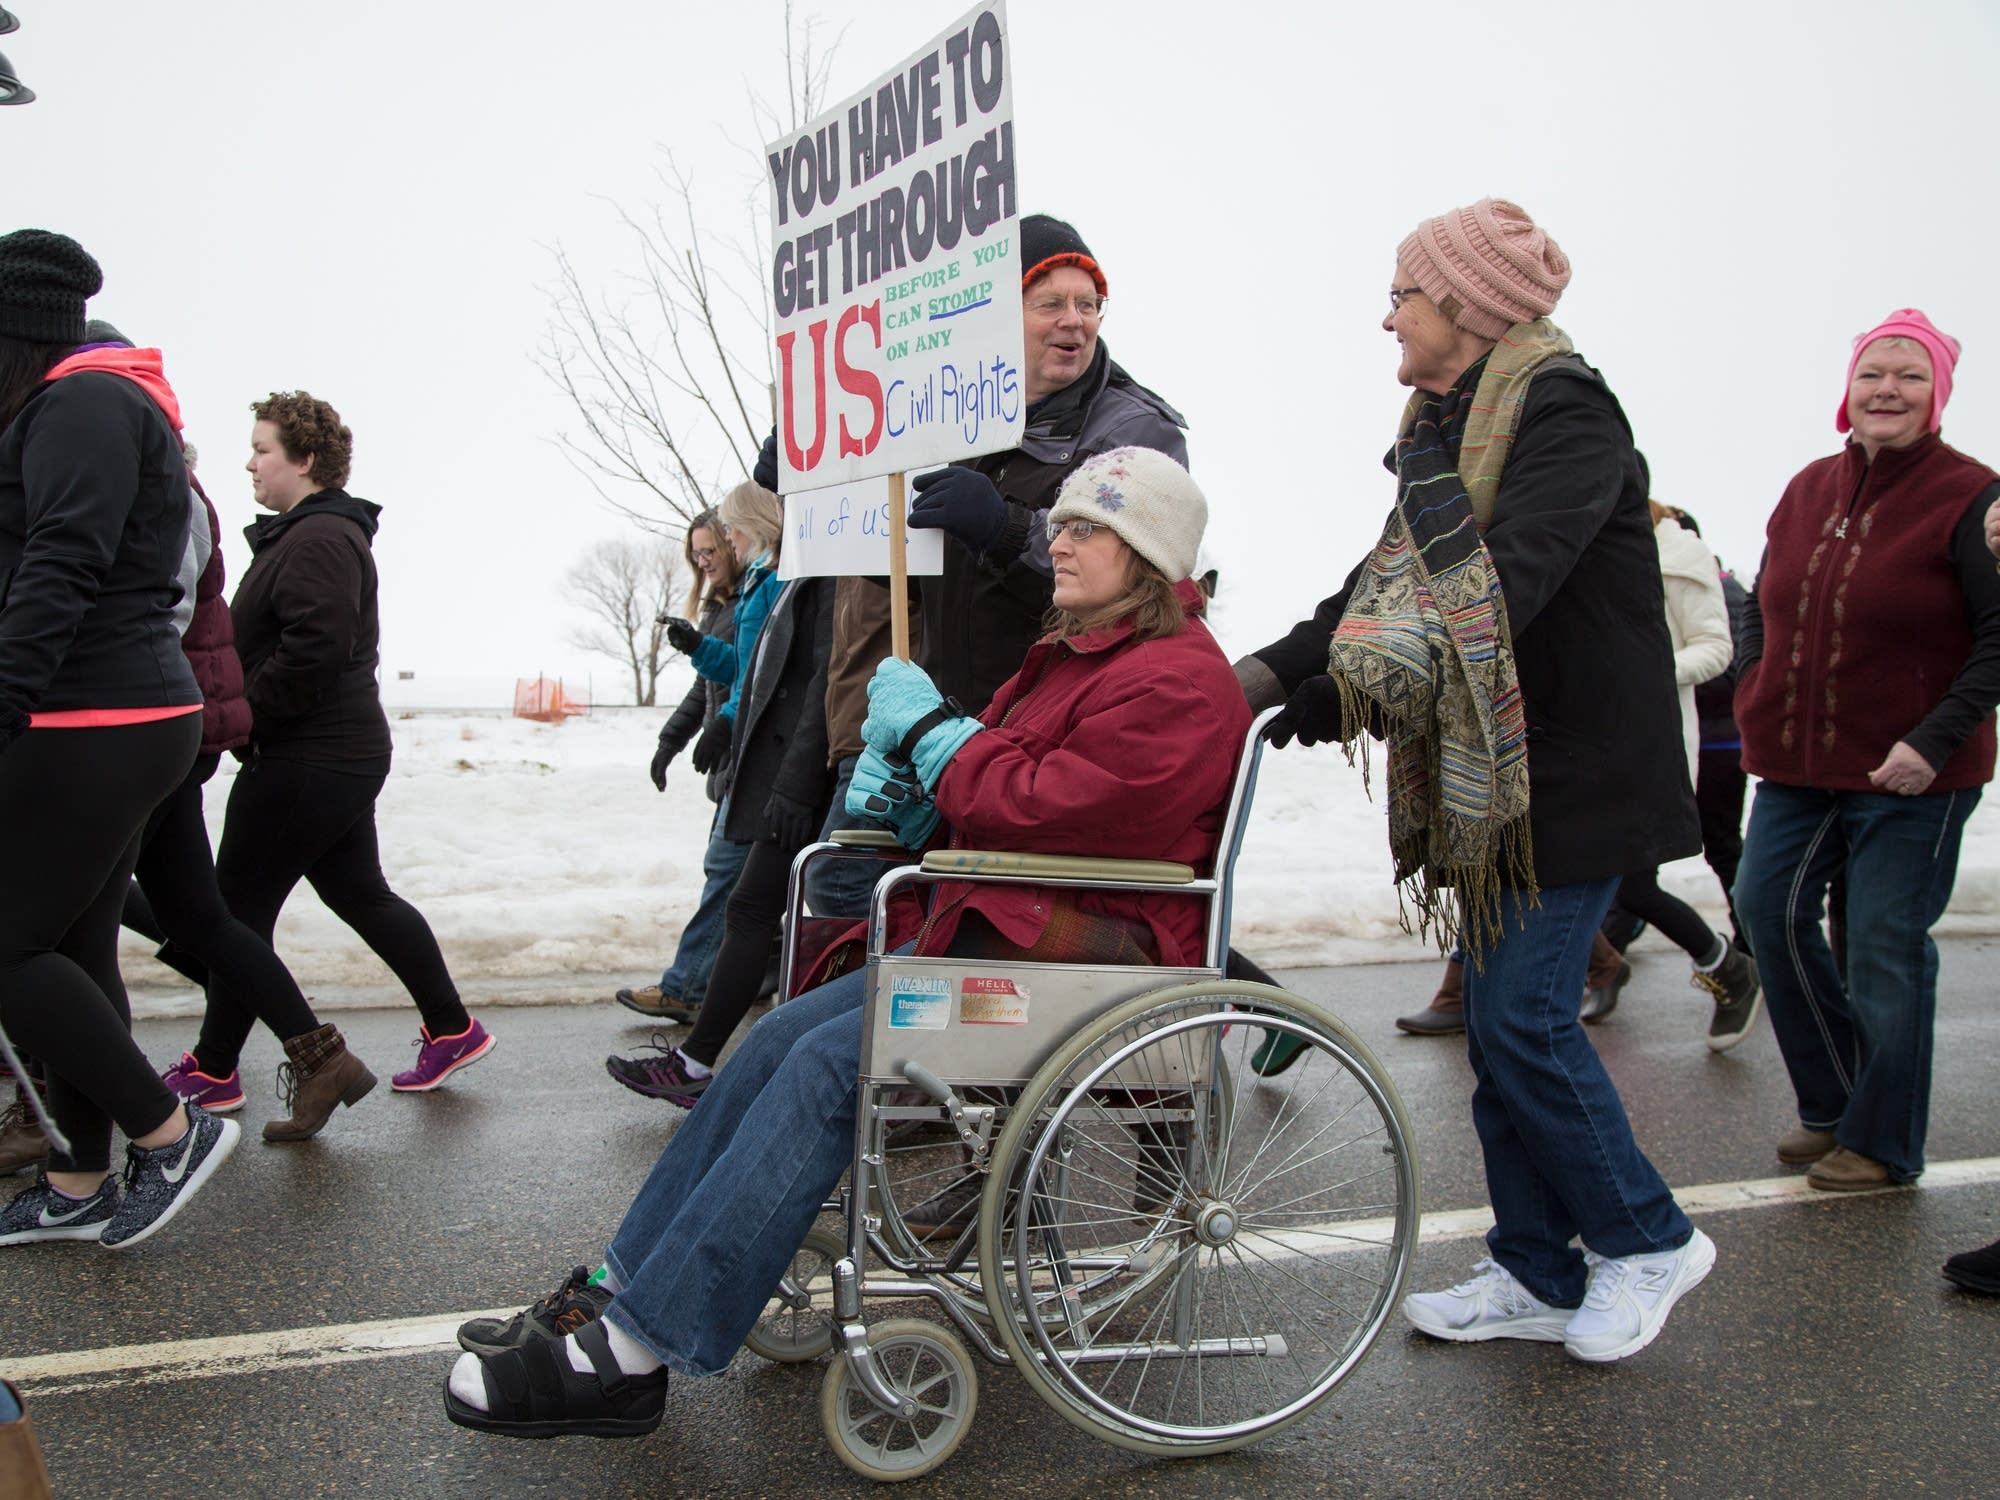 More than 250 people marched through downtown Bemidji.